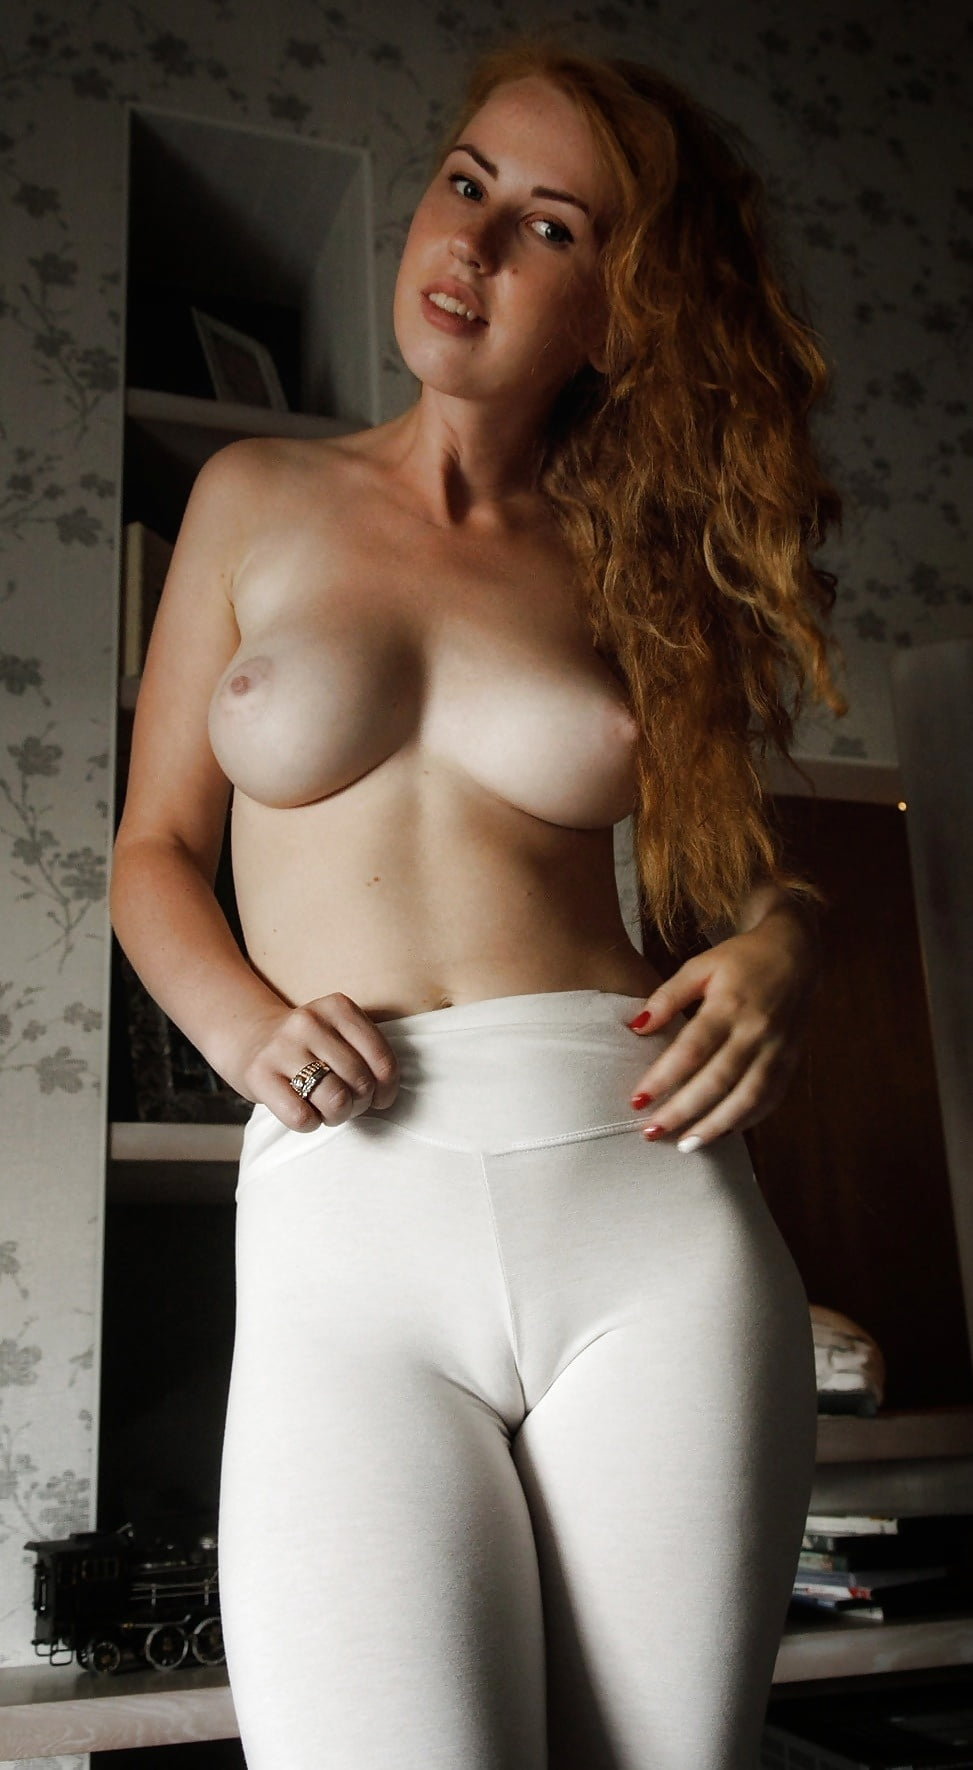 Tight against nude grils